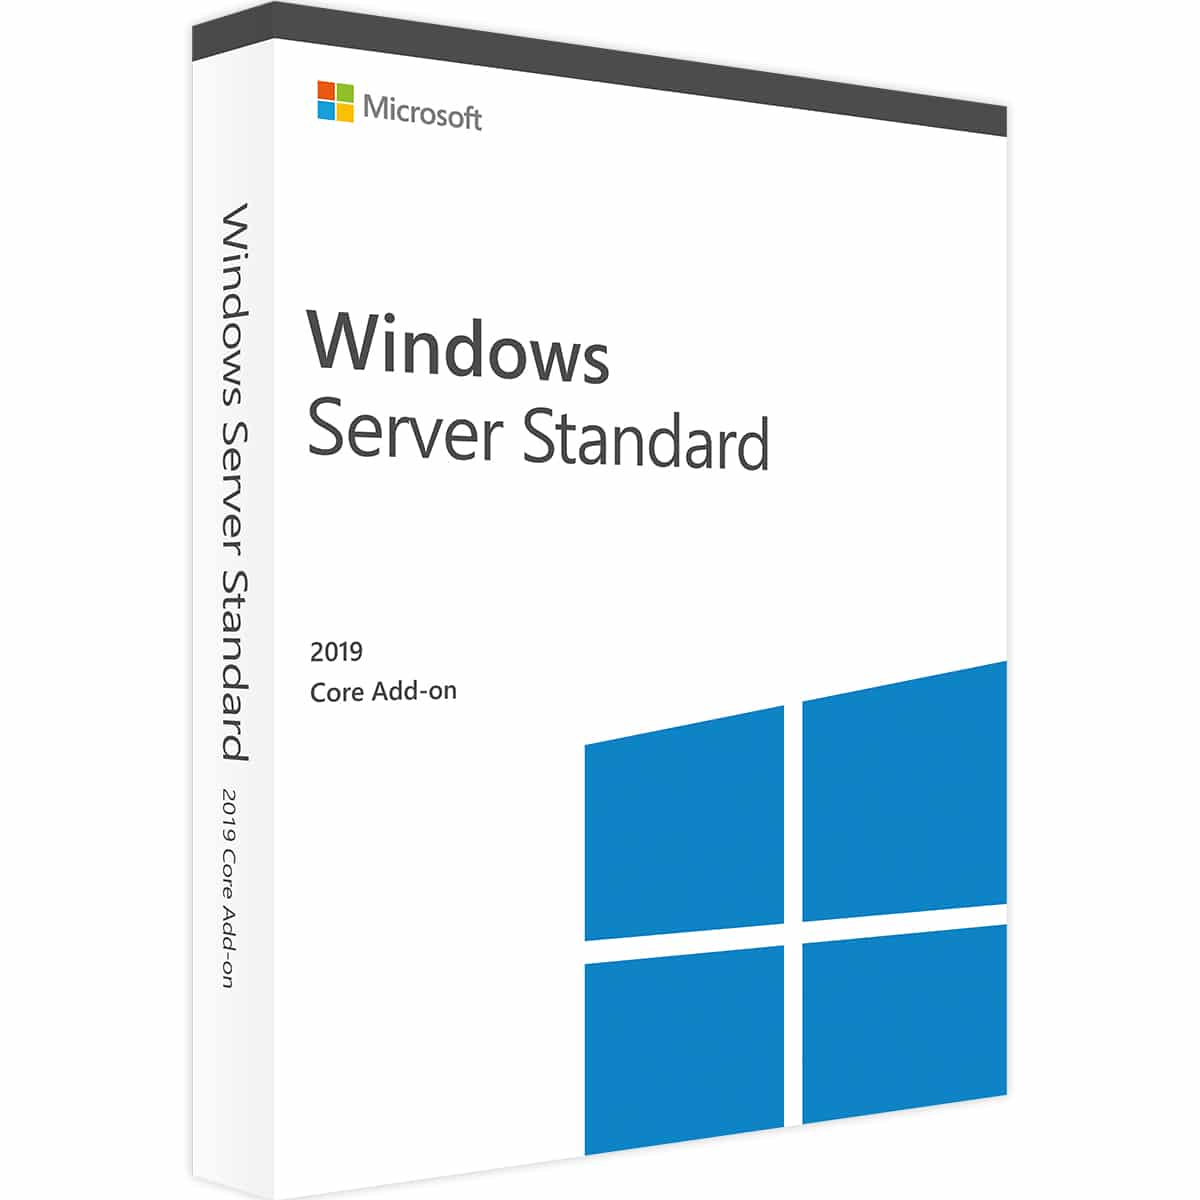 windows-server-2019-standard-core-add-on